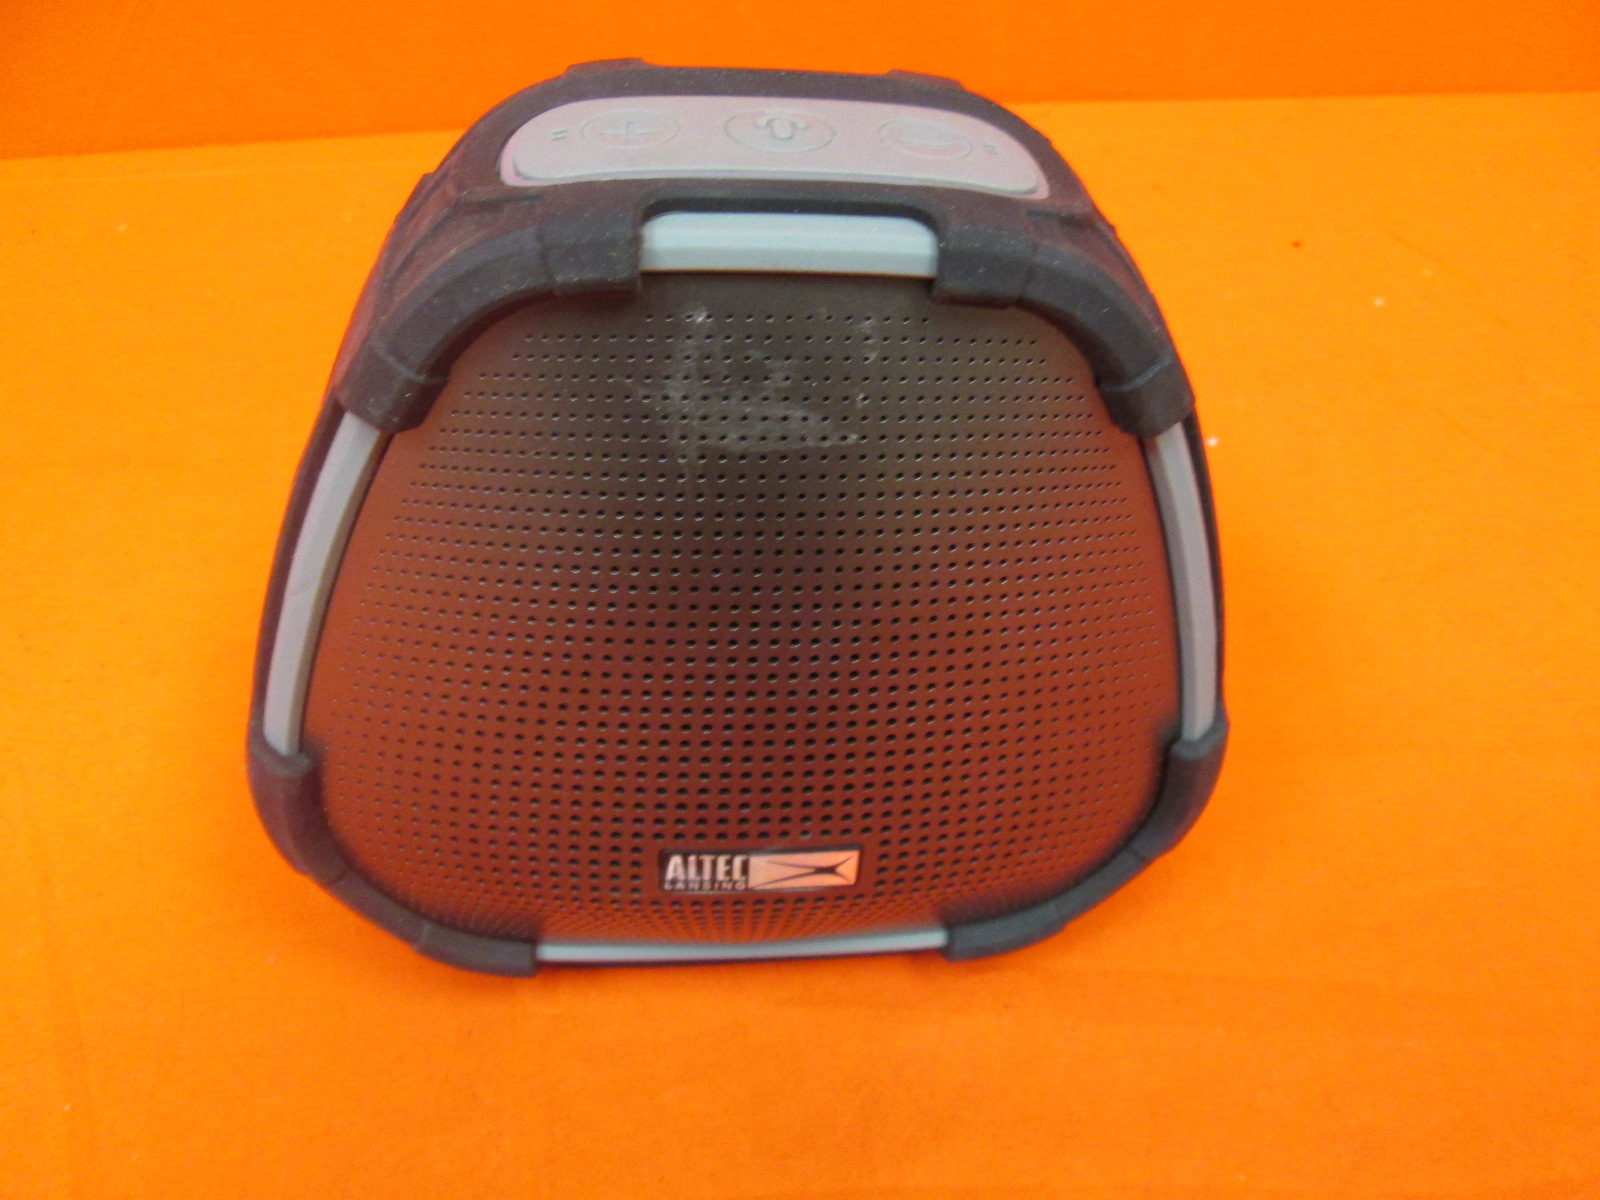 Broken Altec Lansing Versa Smart Portable Bluetooth Speaker